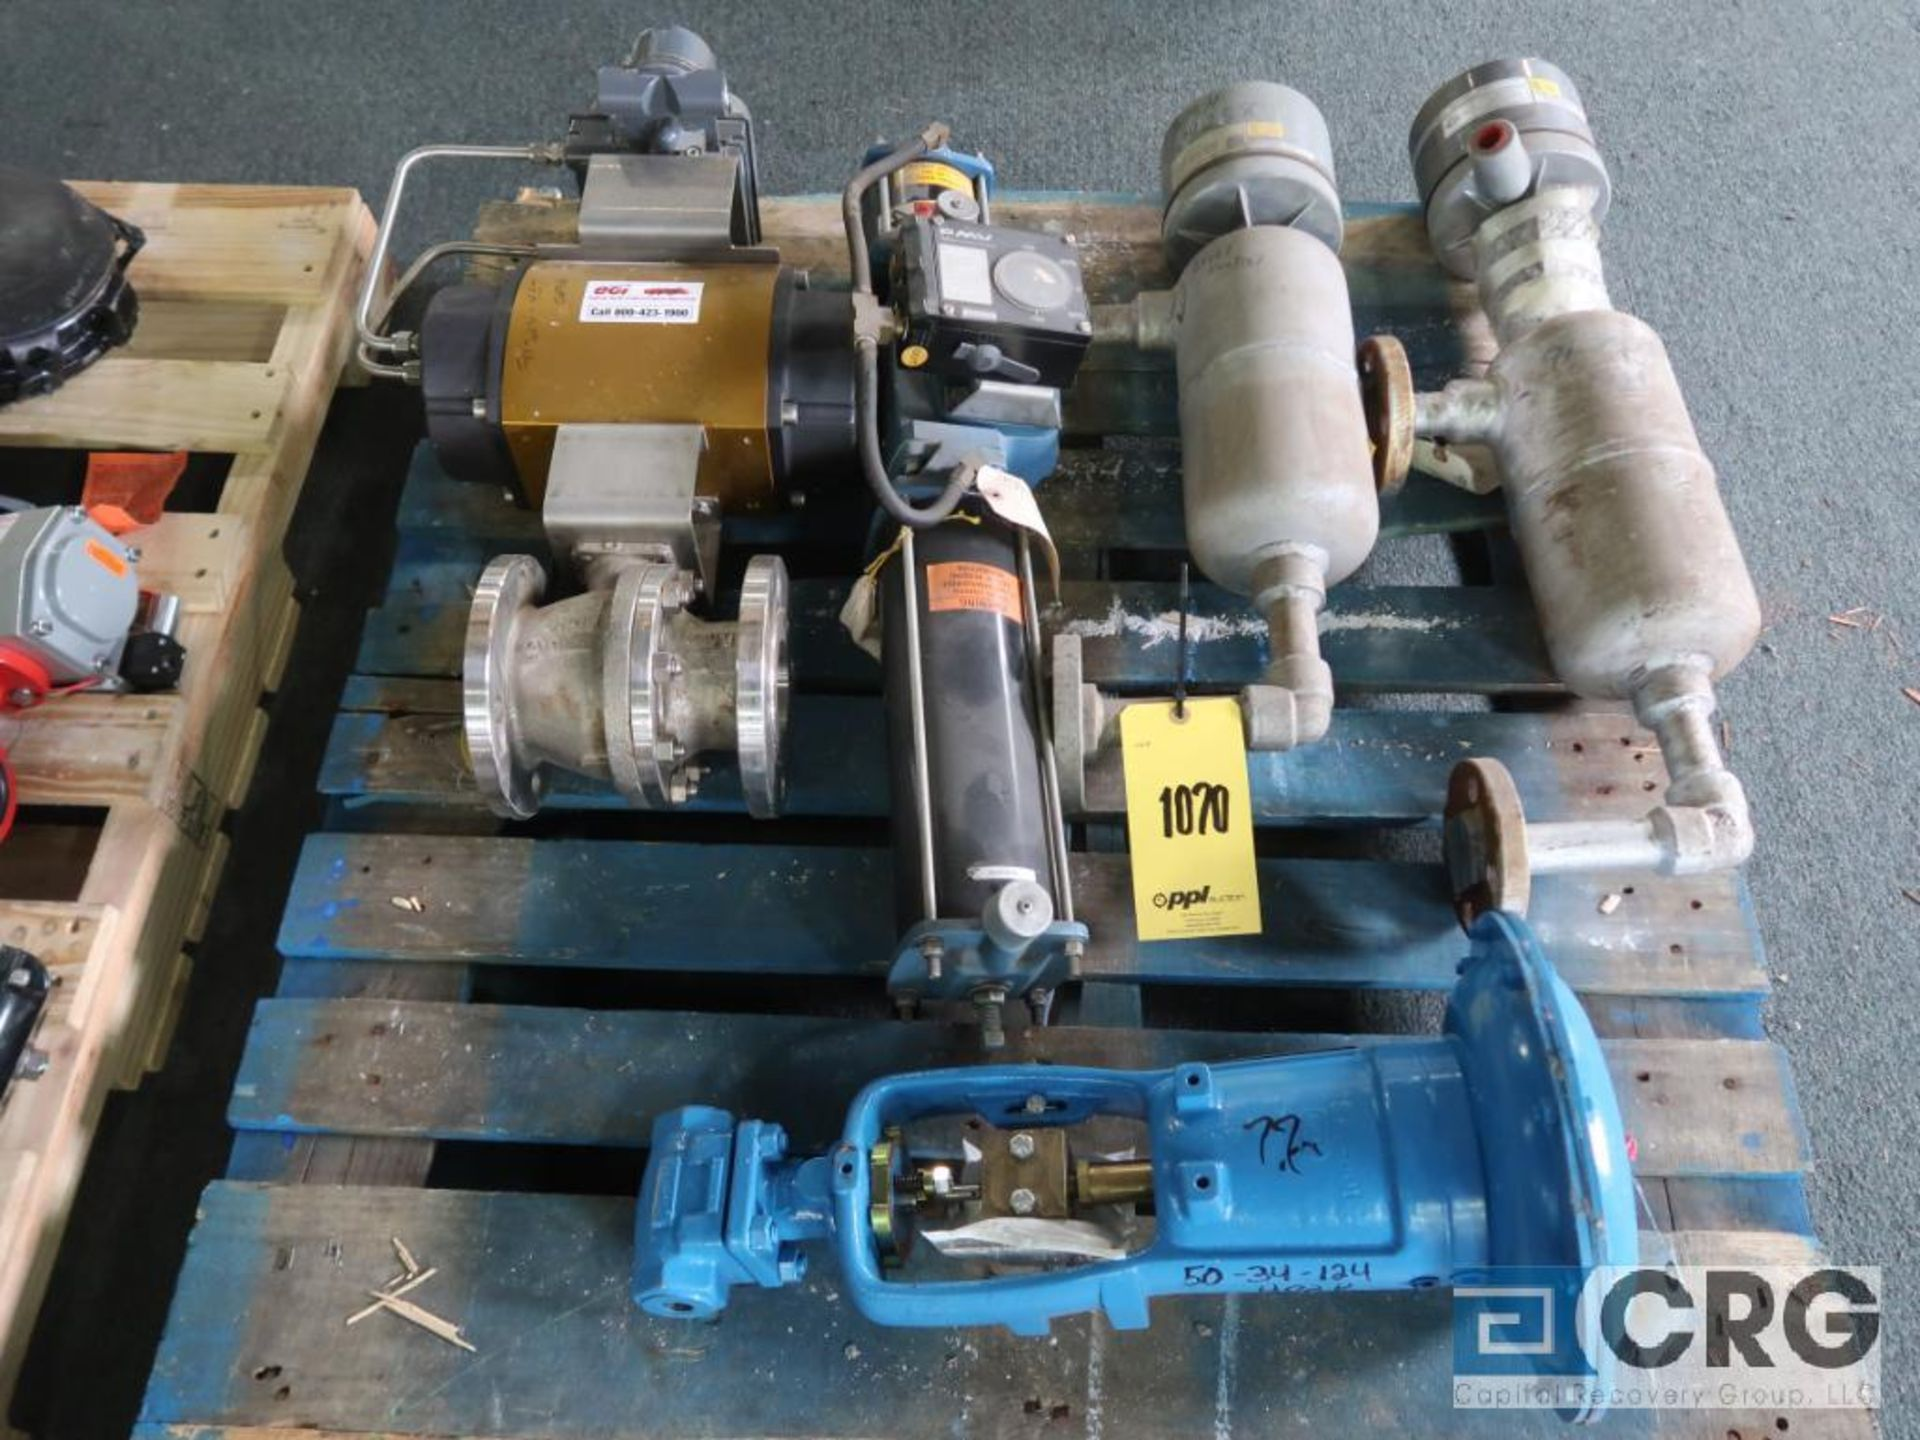 Lot of (12) assorted actuator valves on (2) pallets, (4) butterfly, and (8) ball (Finish Building) - Image 2 of 2